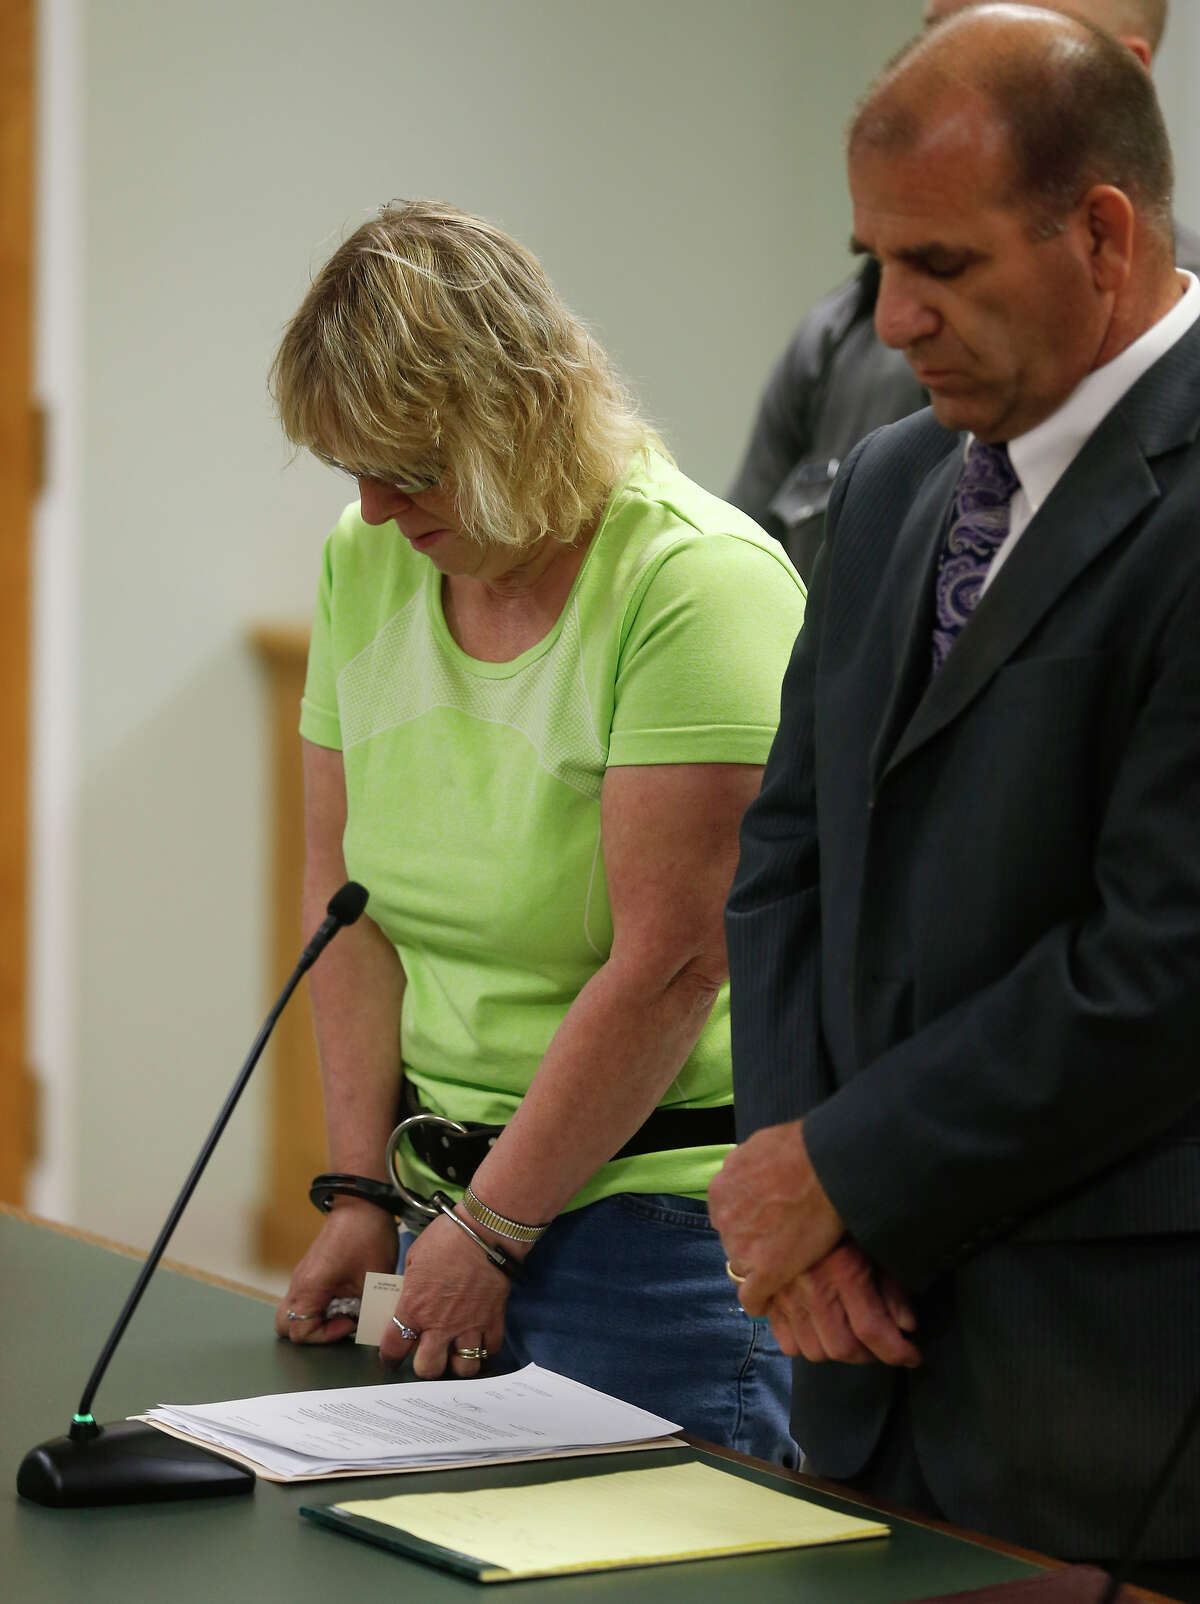 FILE - Joyce Mitchell stands with her attorney Keith Bruno during her arraignment in City Court June 12, 2015 in Plattsburgh, New York. Mitchell was arrested Friday for allegedly helping two convicted murderers, David Sweat and Richard Matt, escape the maximum security section of the Clinton Correctional Facility in Dannemora.